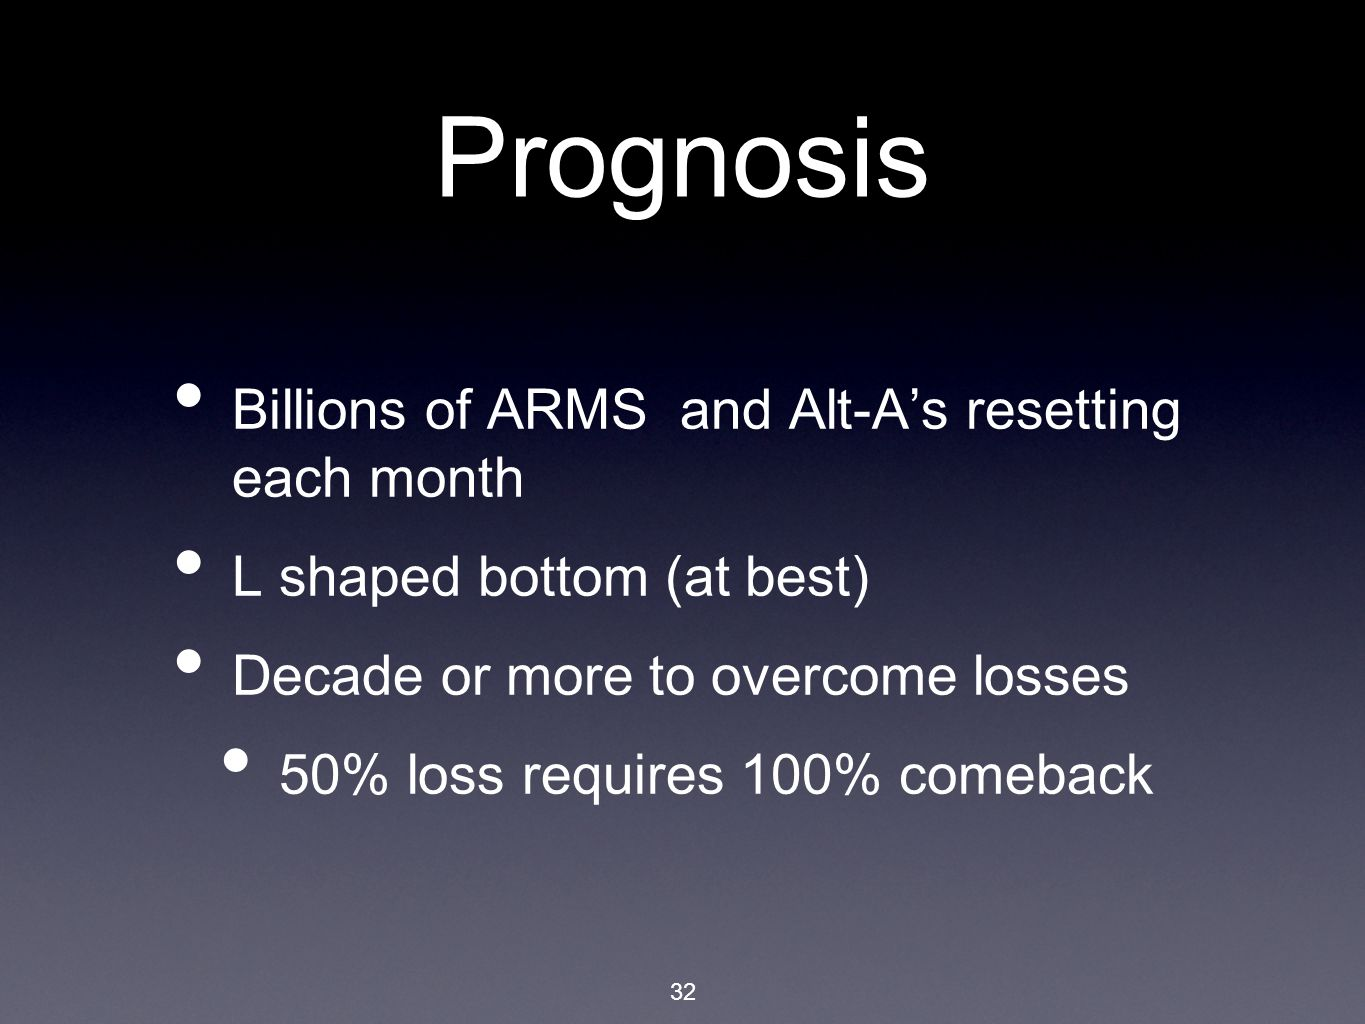 32 Prognosis Billions of ARMS and Alt-A's resetting each month L shaped bottom (at best) Decade or more to overcome losses 50% loss requires 100% comeback